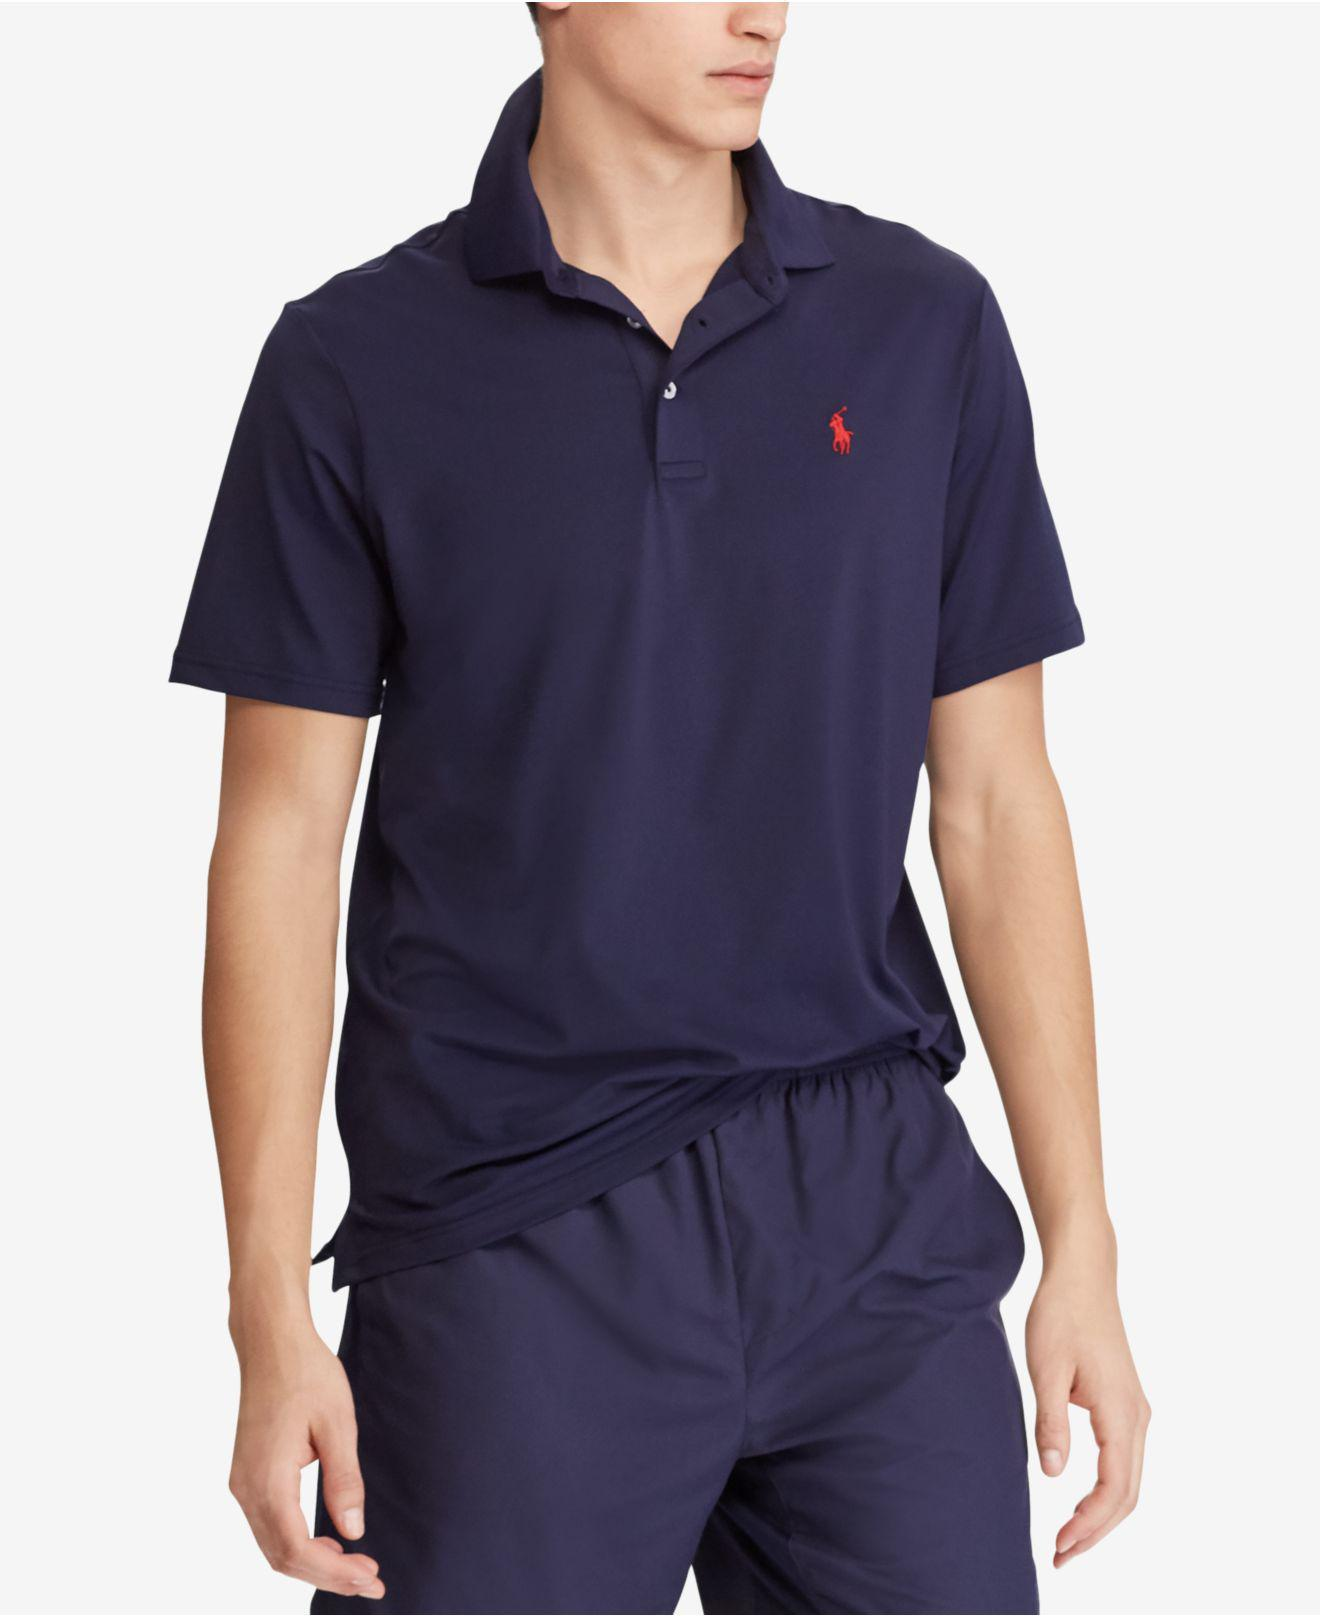 422b30a5bf6 Lyst - Polo Ralph Lauren Classic Fit Performance Polo in Blue for Men